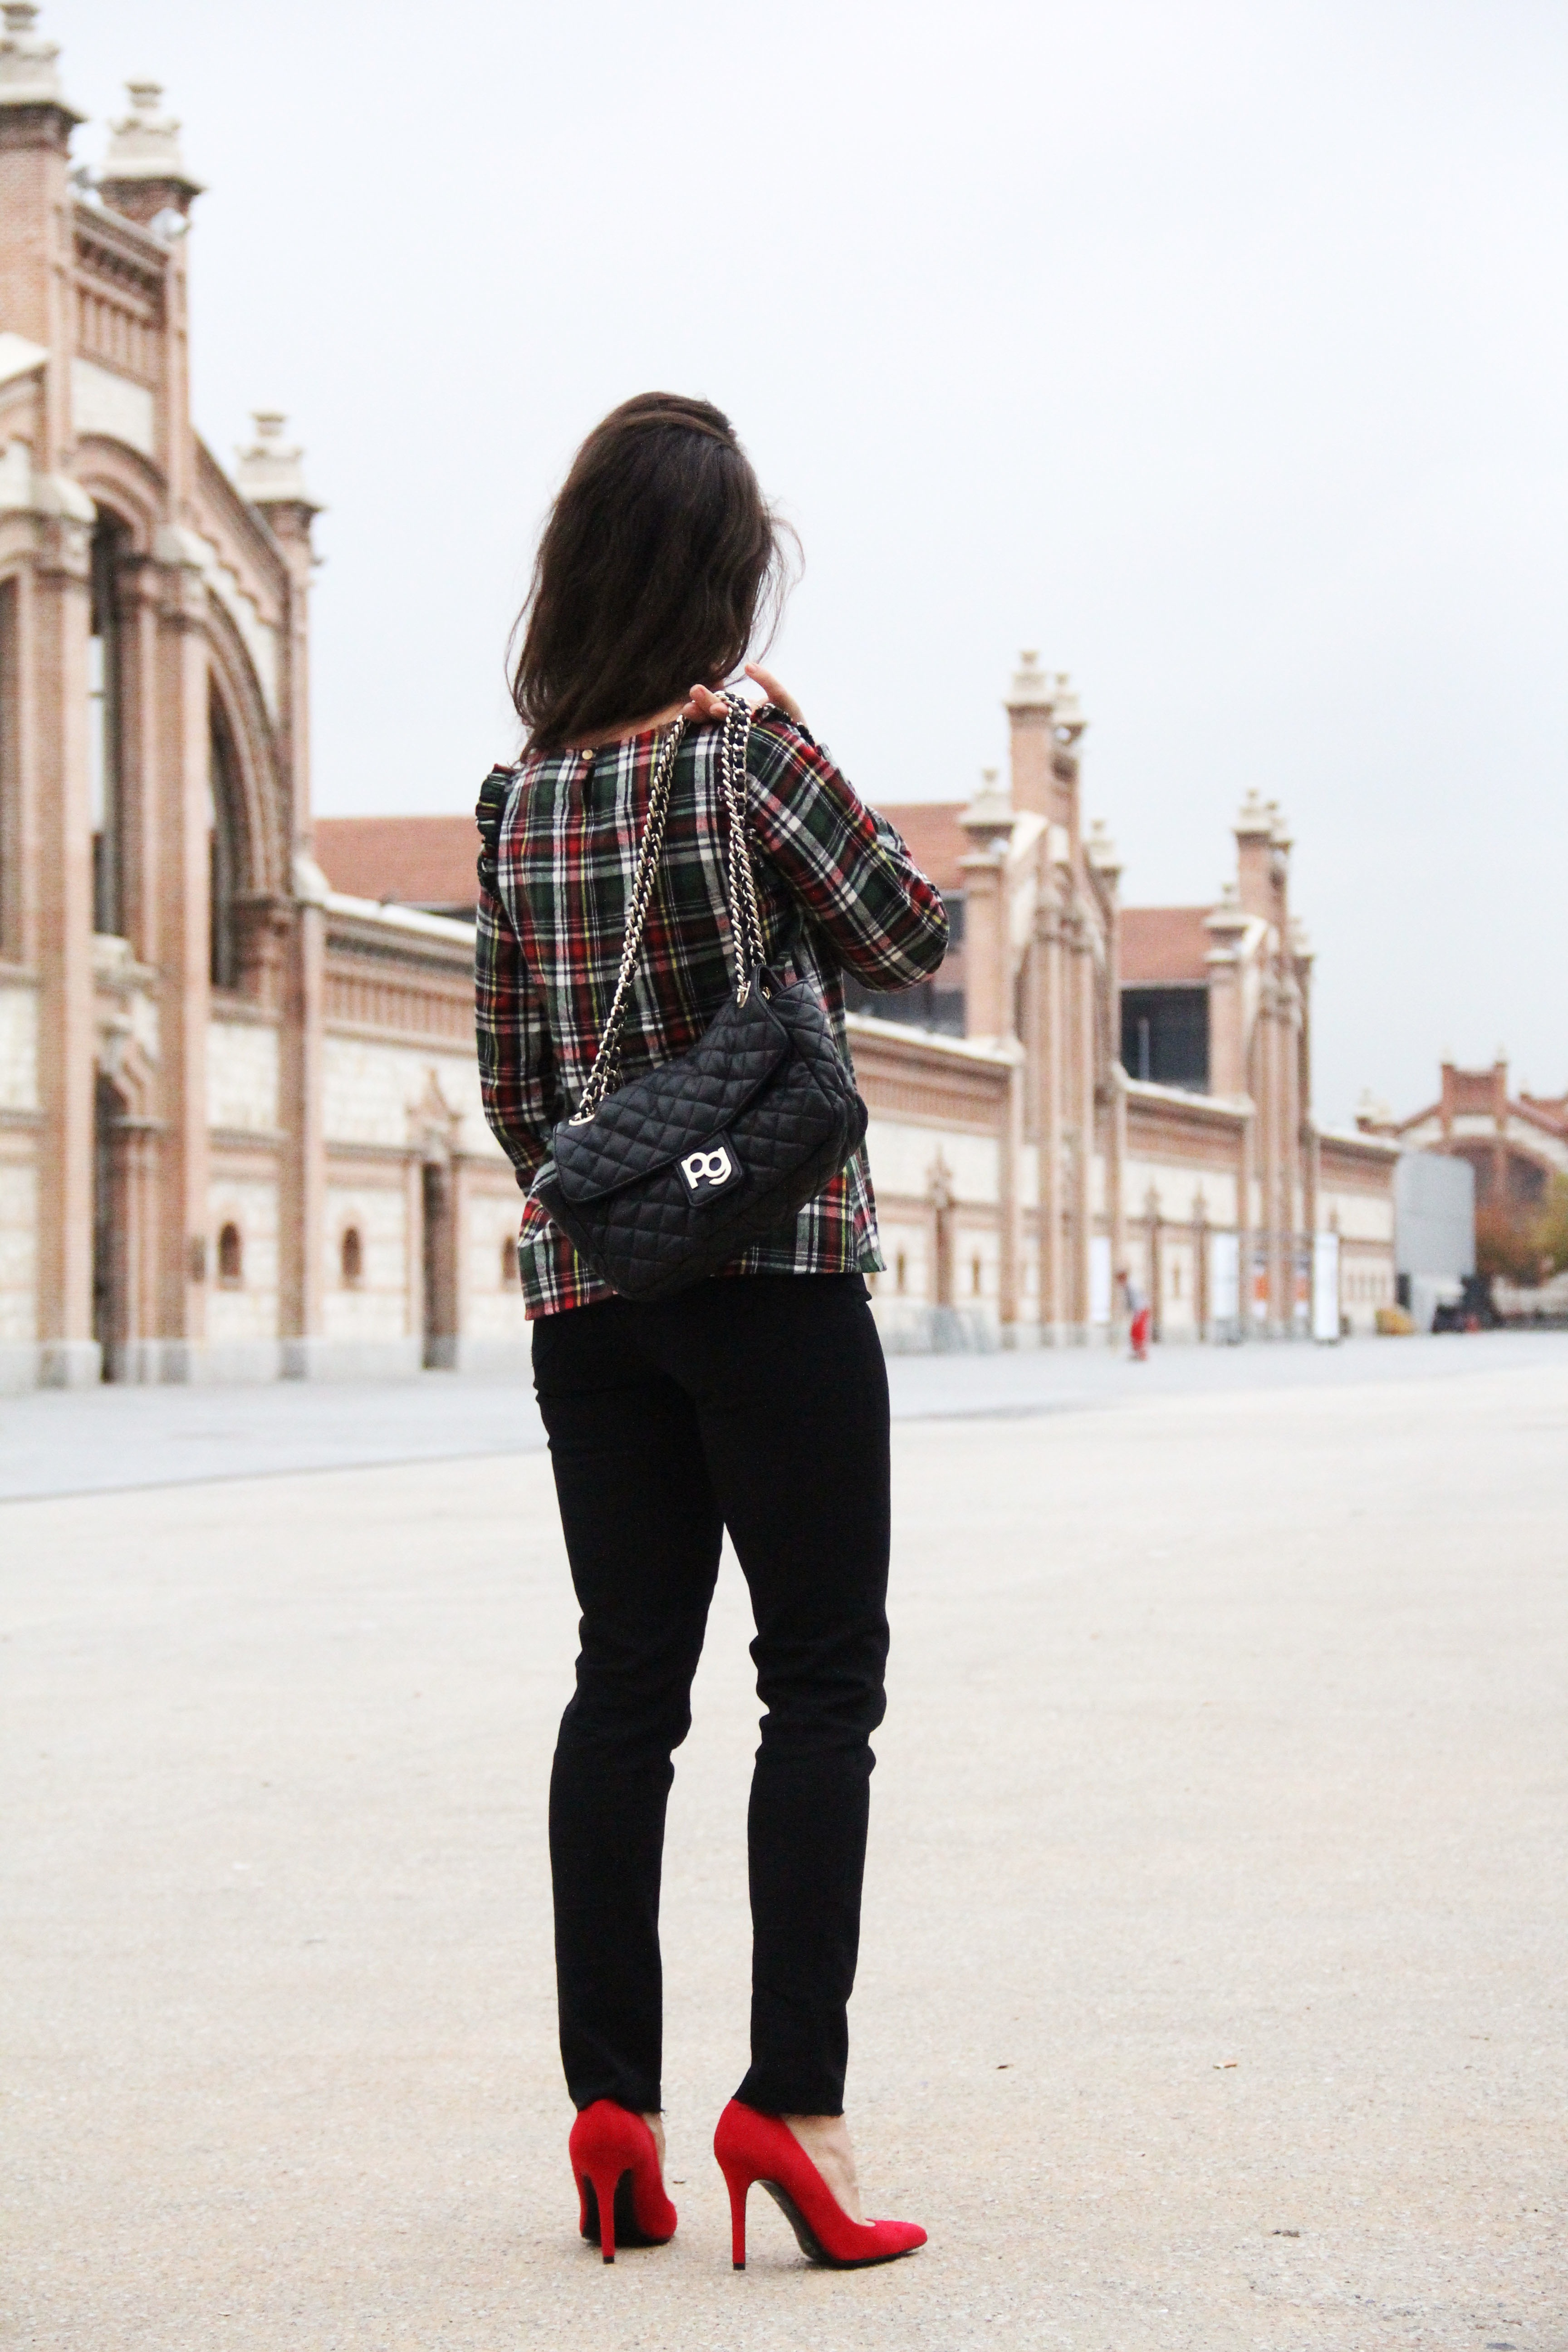 6_Less_is_more-black_jeans-compañía_fantástica-camisa_cuadros-salones_rojos-red_heels-outfit-street_style-bolso_purificacion_garcia-skinny_jeans